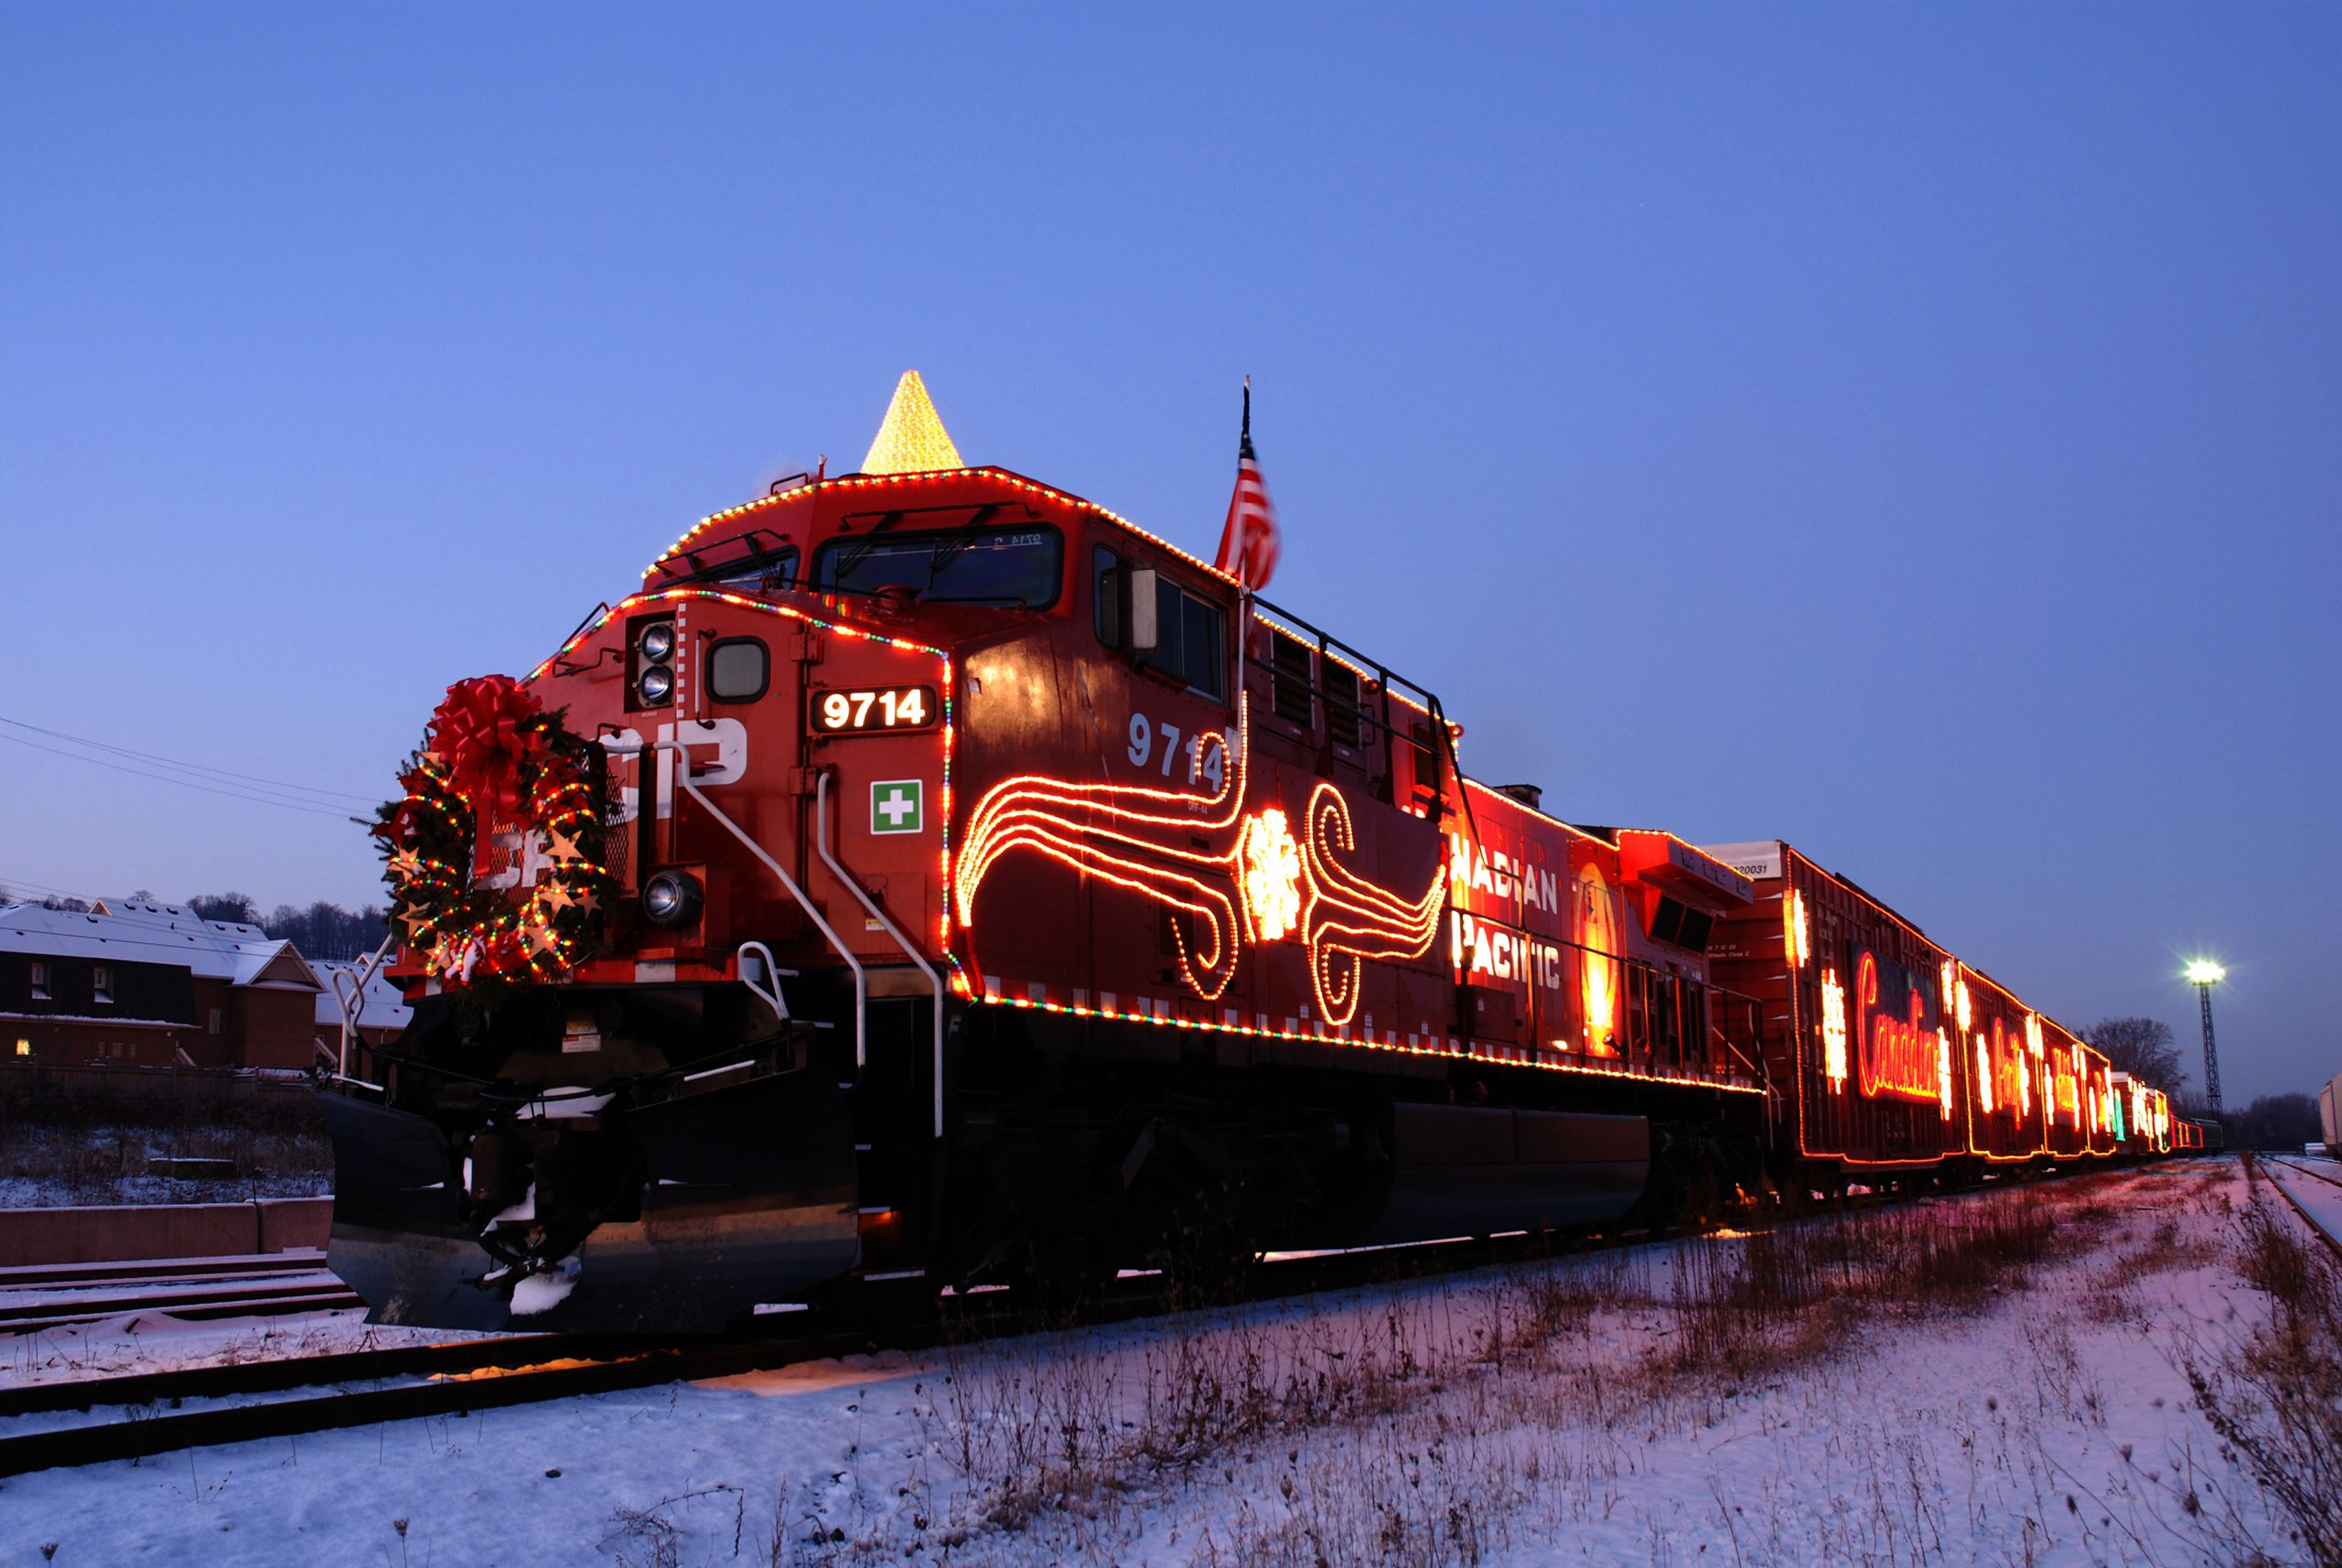 The Canadian Pacific Holiday Train